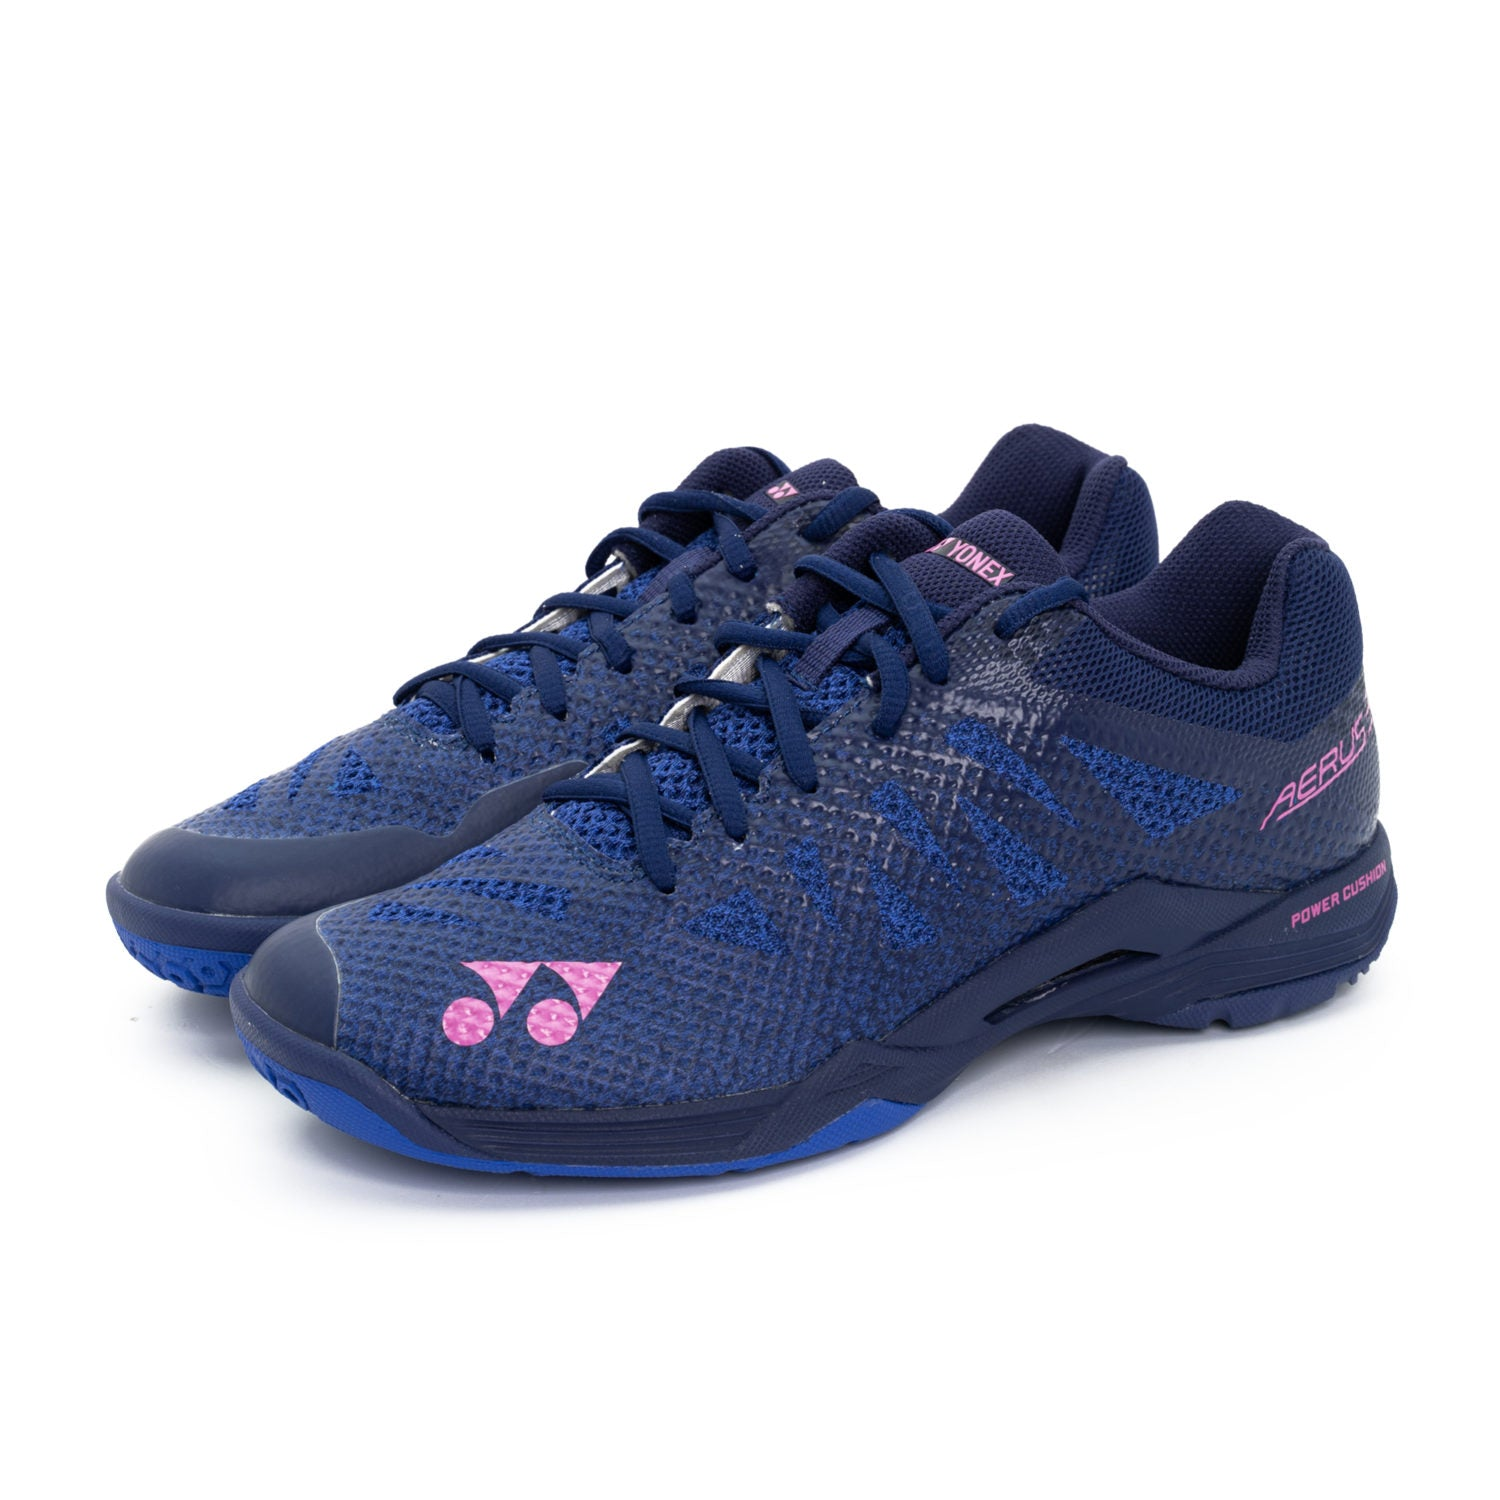 Yonex Power Cushion Aerus 3 LX Badminton Shoes